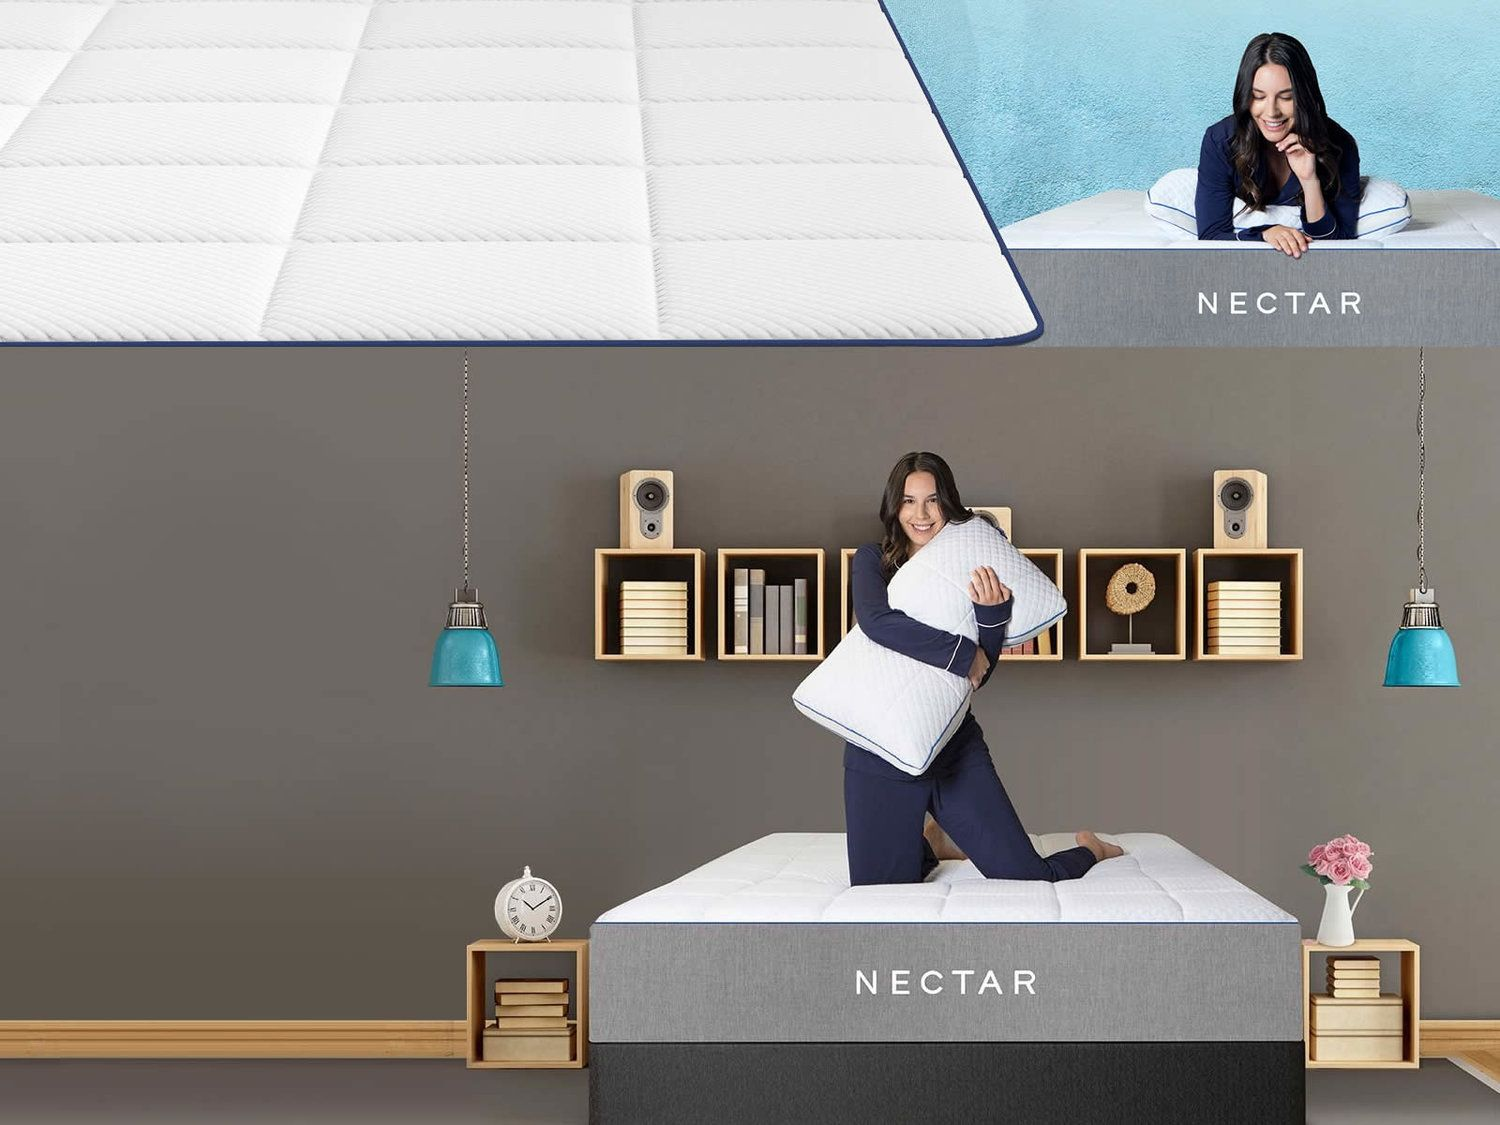 Nectar Mattress Review Mattresses reviews, Mattress